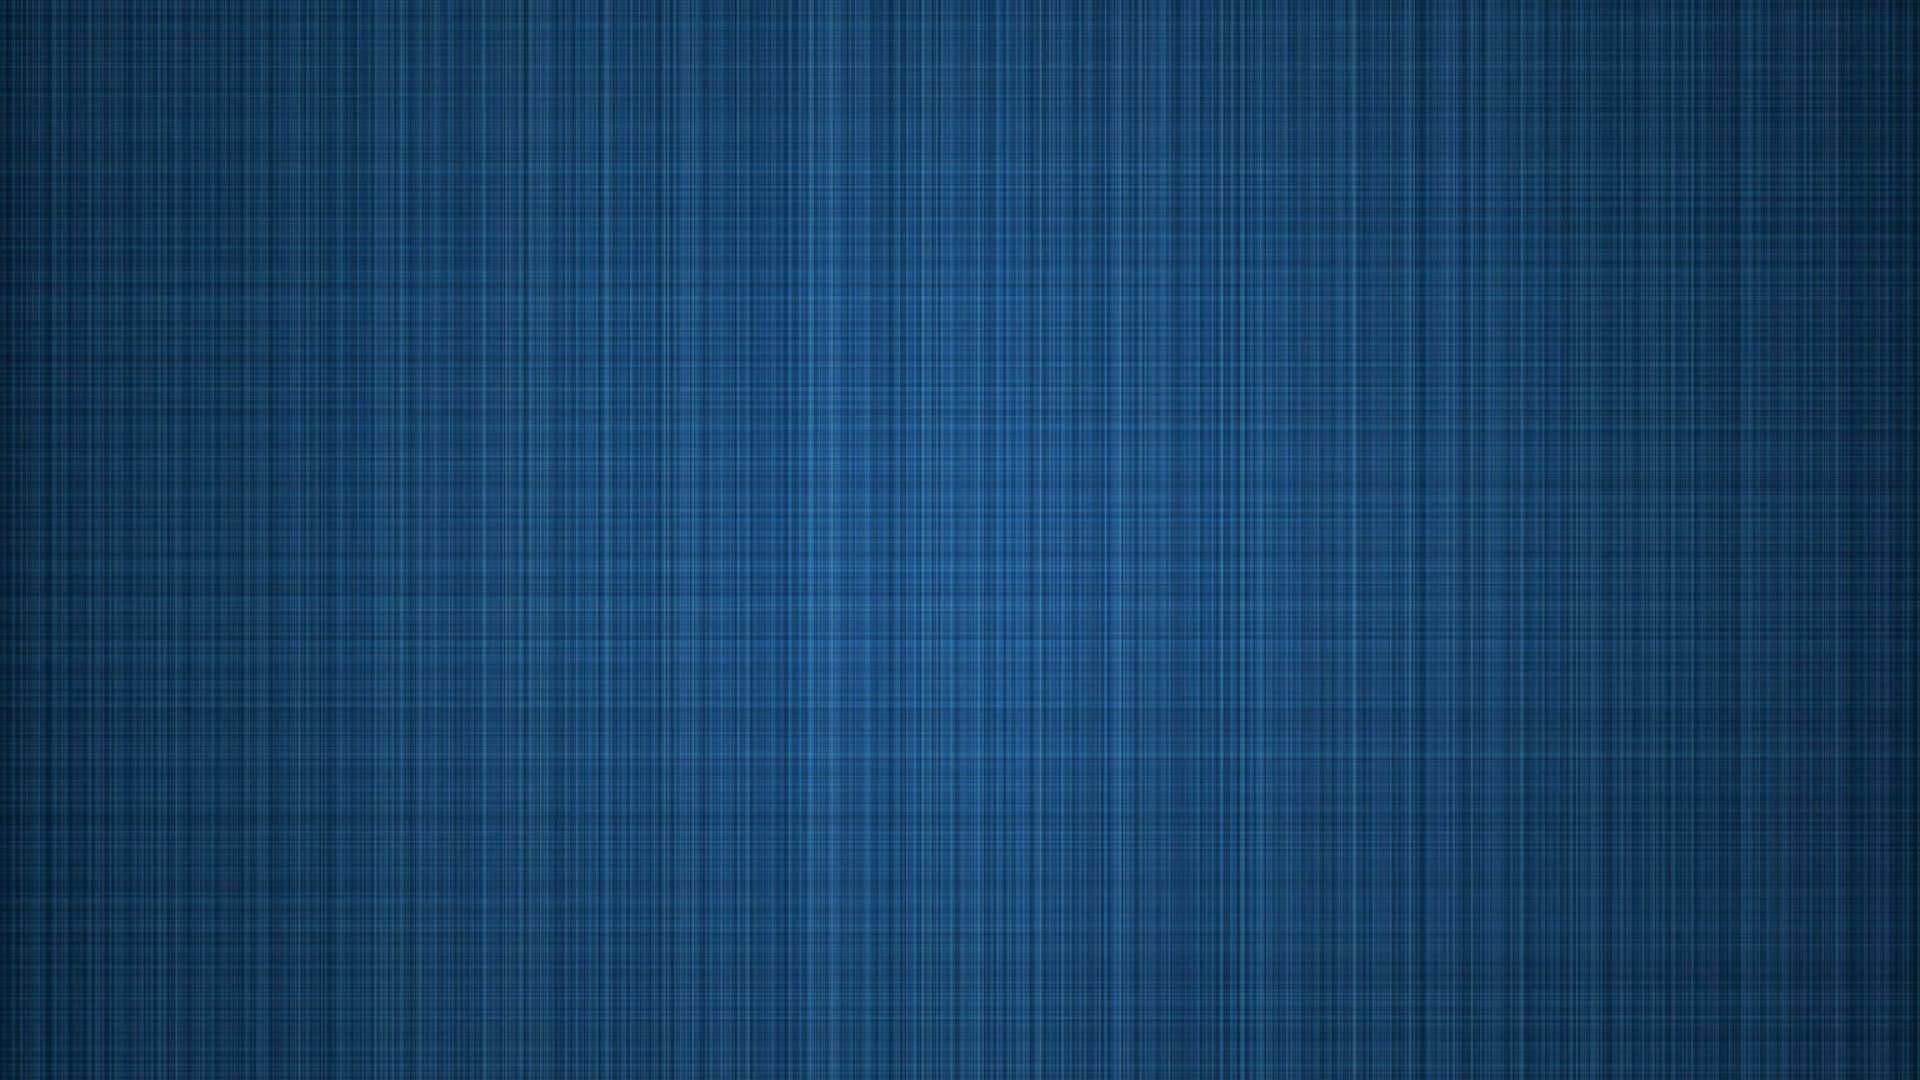 Blueprint Wallpaper and Background